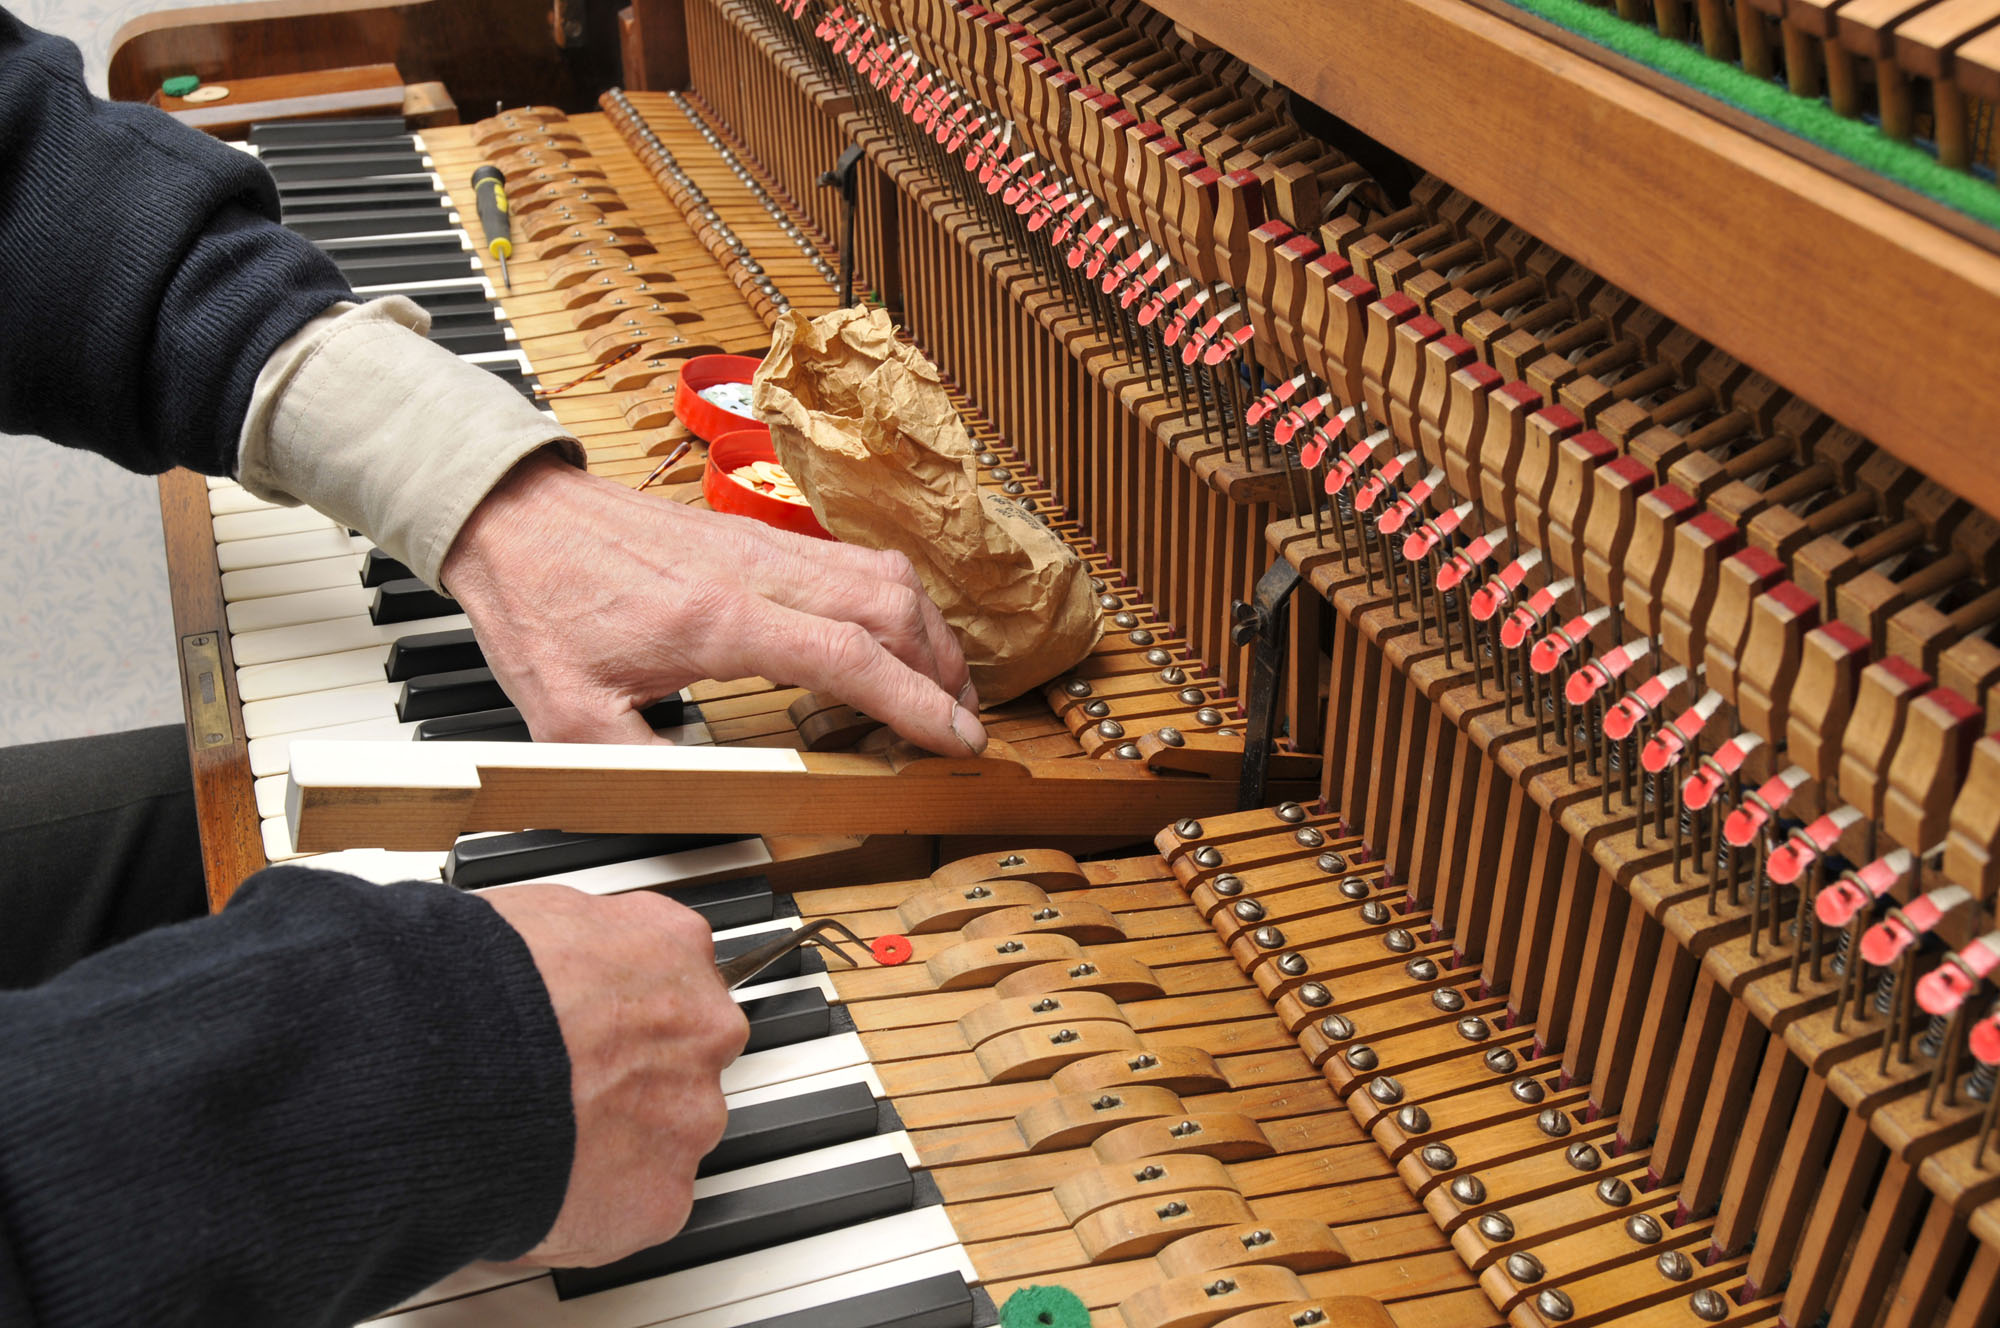 Bondi's Piano Service, Repair